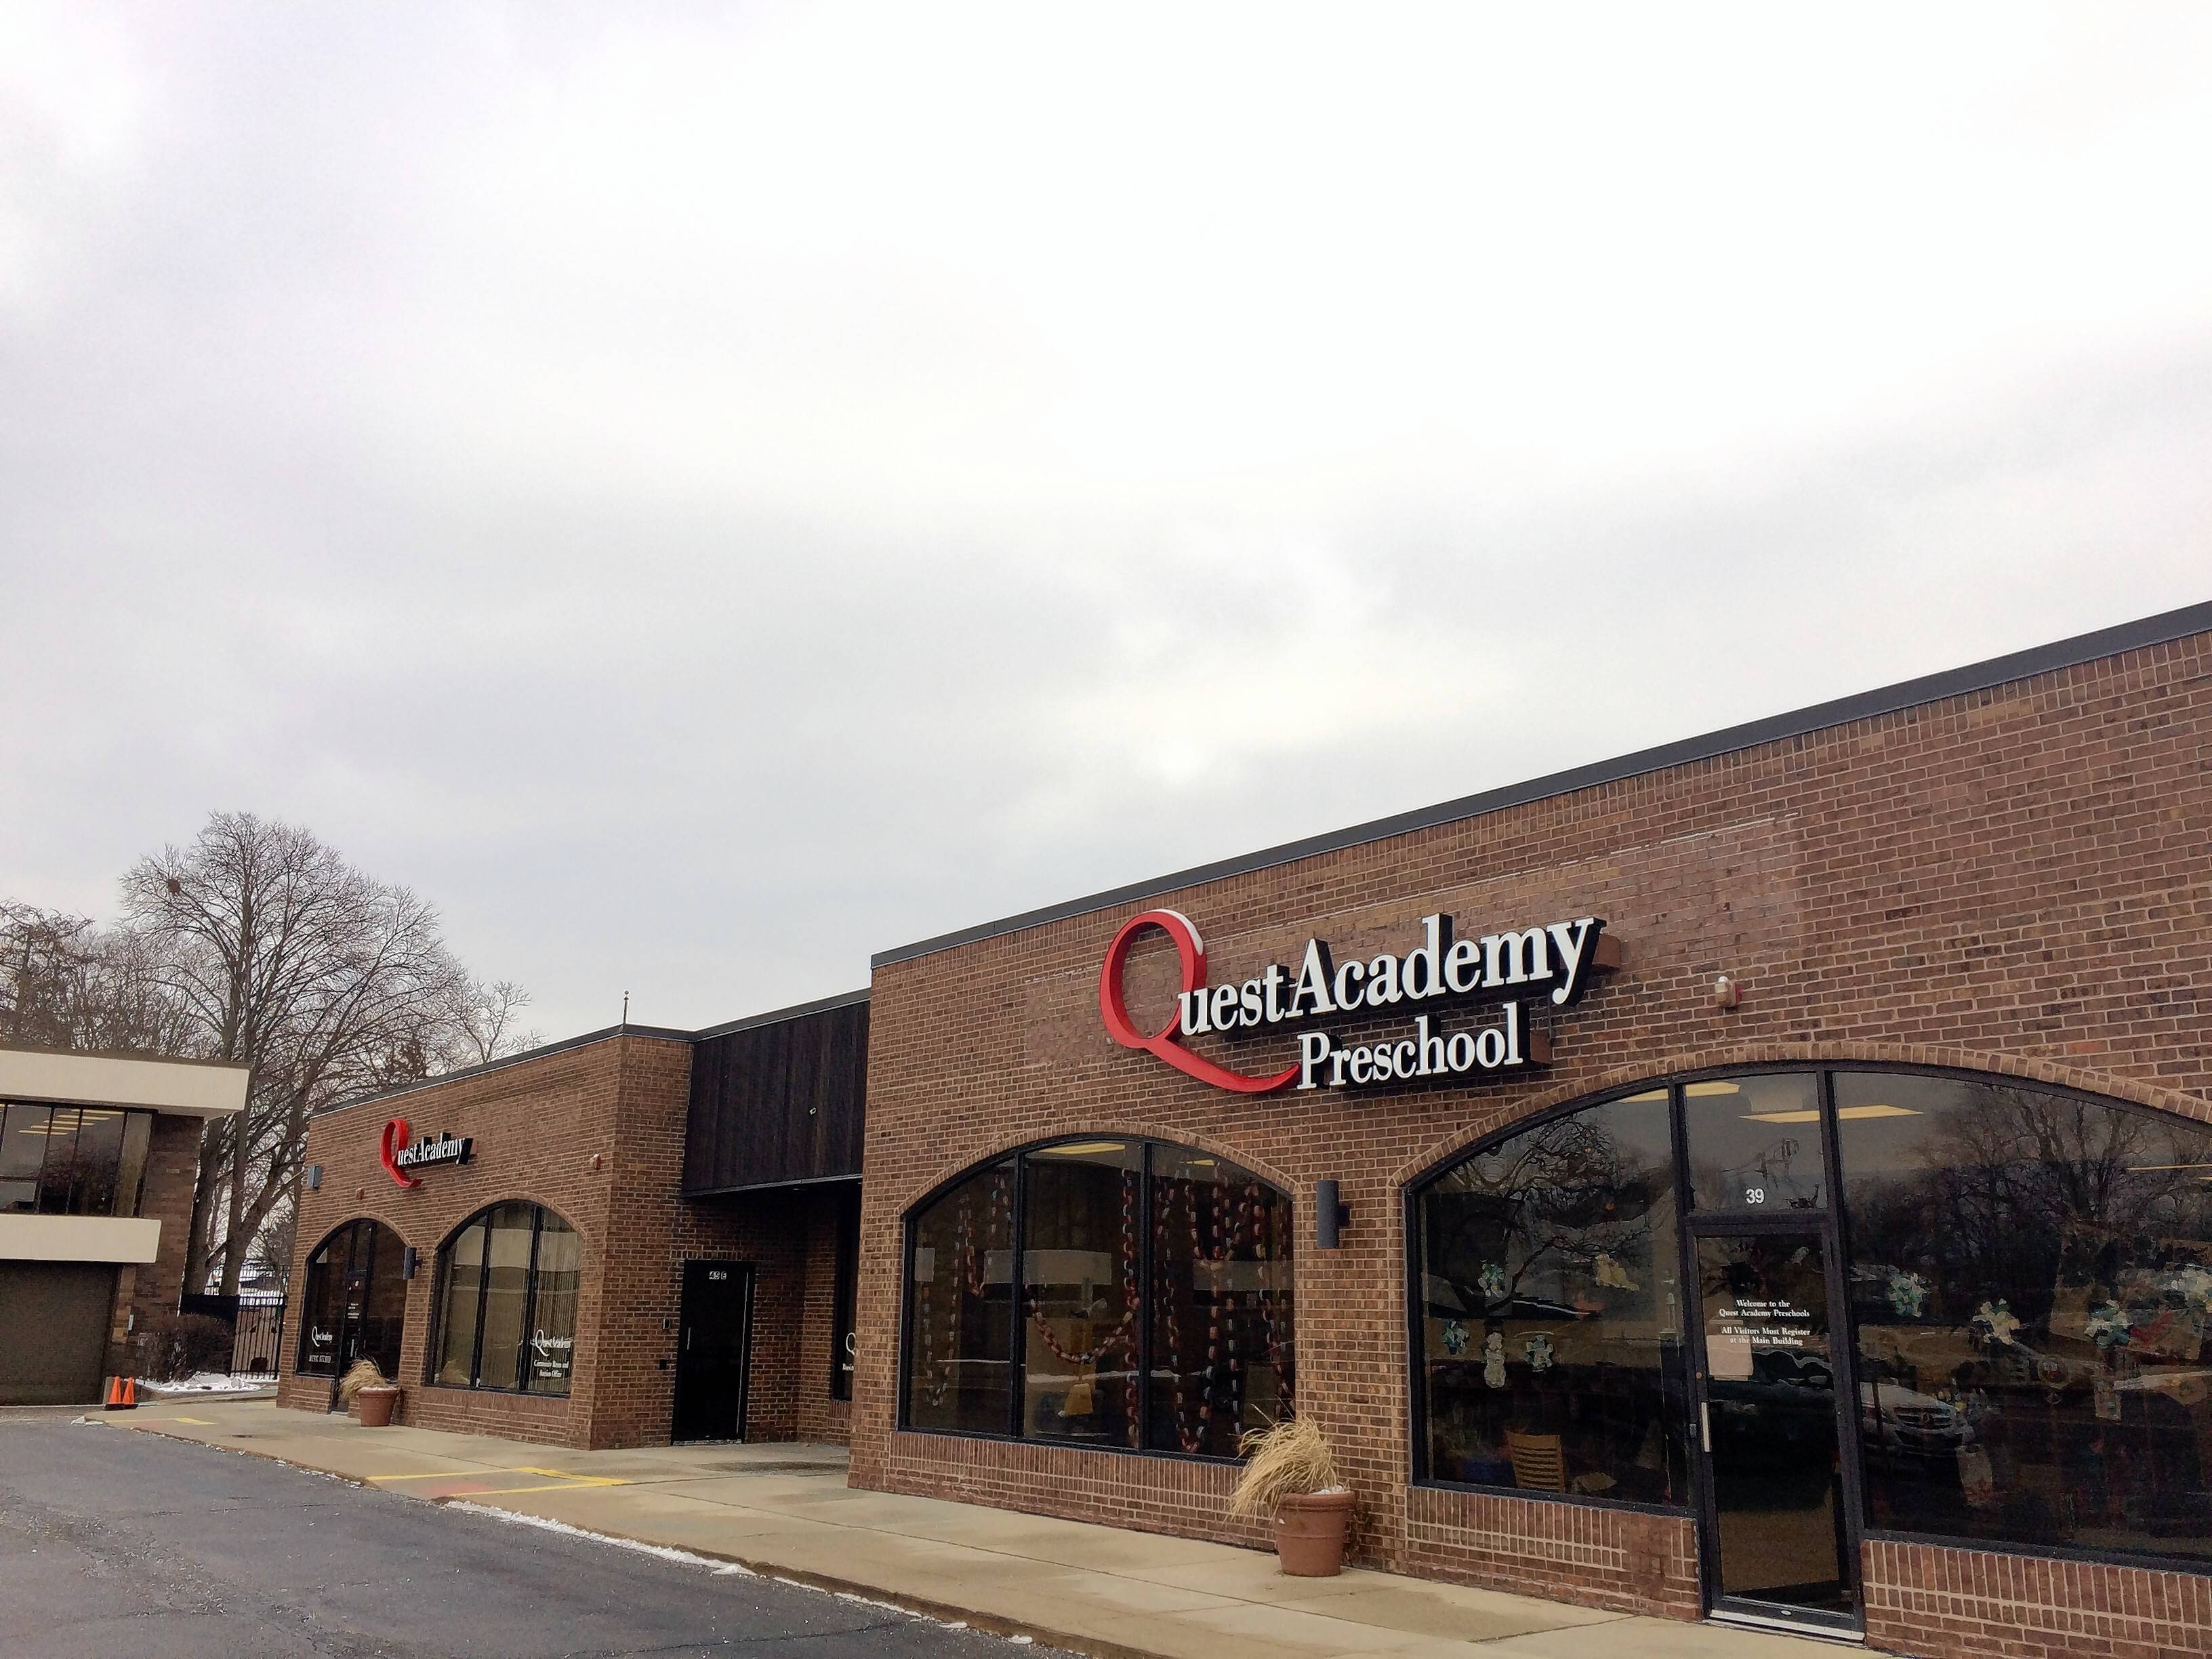 Quest Academy in Palatine wants to open a children's museum next to its preschool at Palatine Centre on Northwest Highway, between Smith and Benton streets.